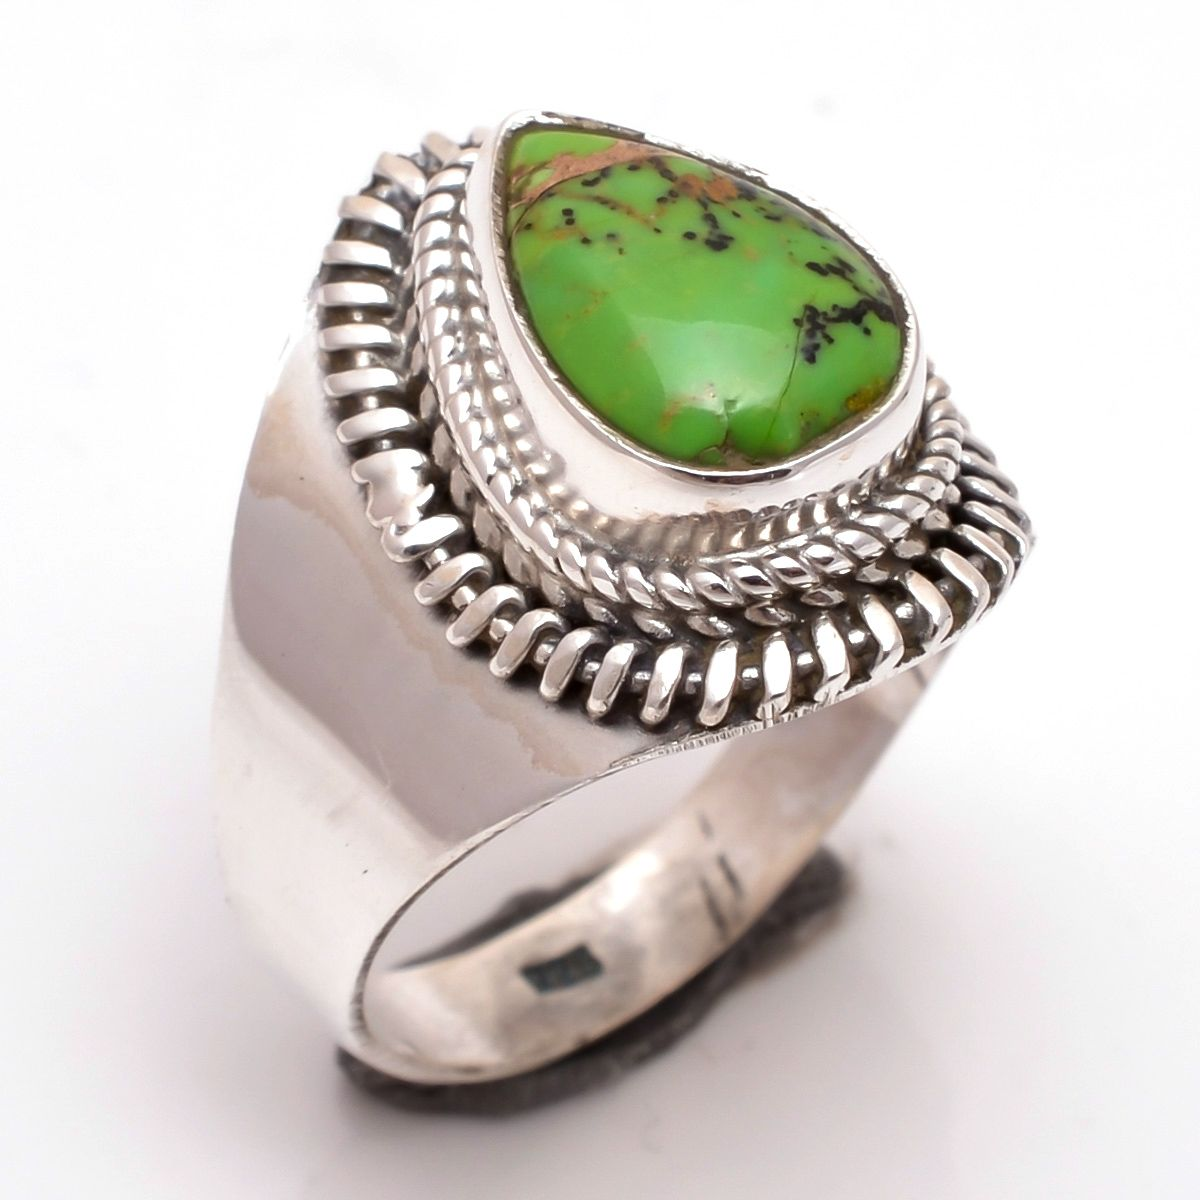 Green Copper Turquoise Gemstone 925 Sterling Silver Ring Size 8.5